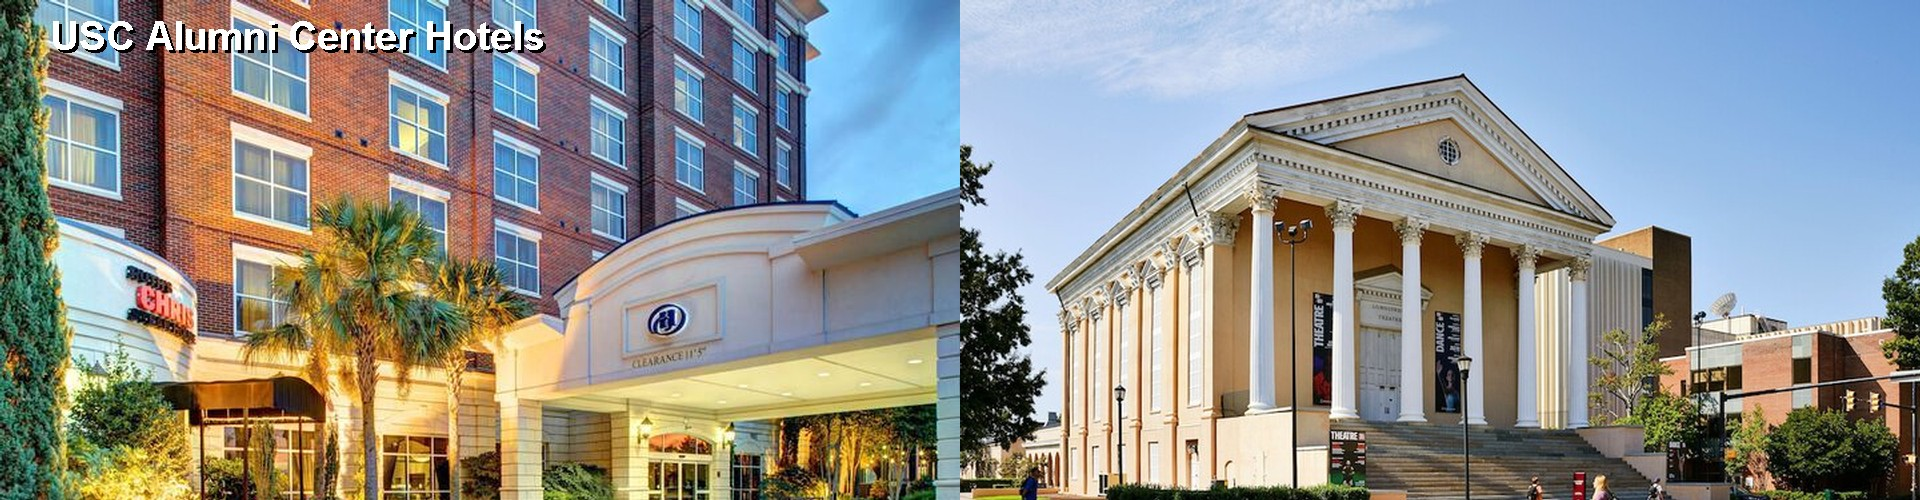 5 Best Hotels Near Usc Alumni Center